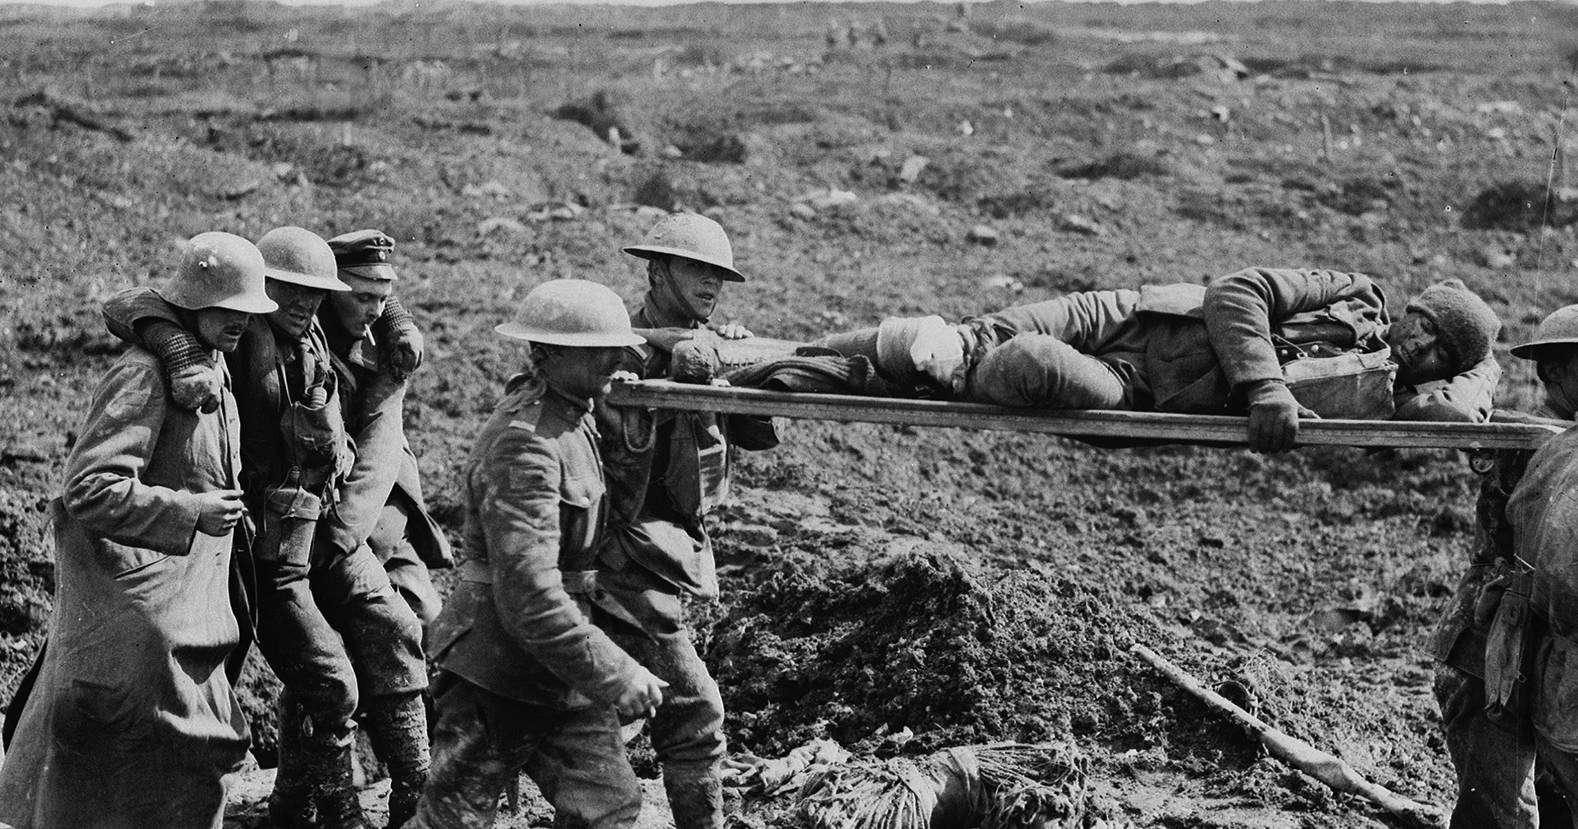 The First World War: A Turning Point in Global History